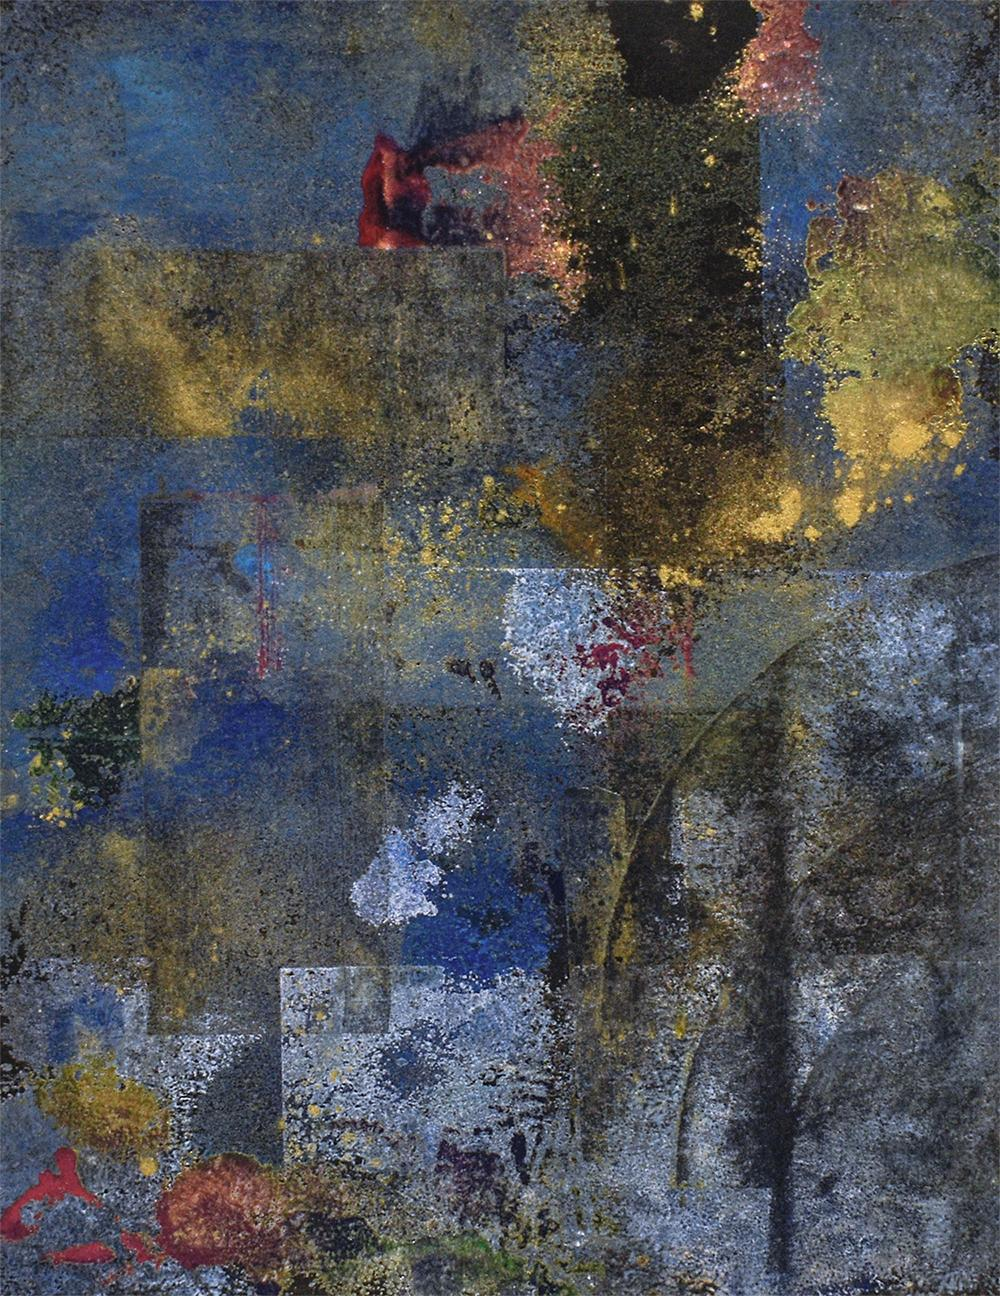 Time and Again 1 (Abstract Expressionist Painting in Blue, Gold & Gray)